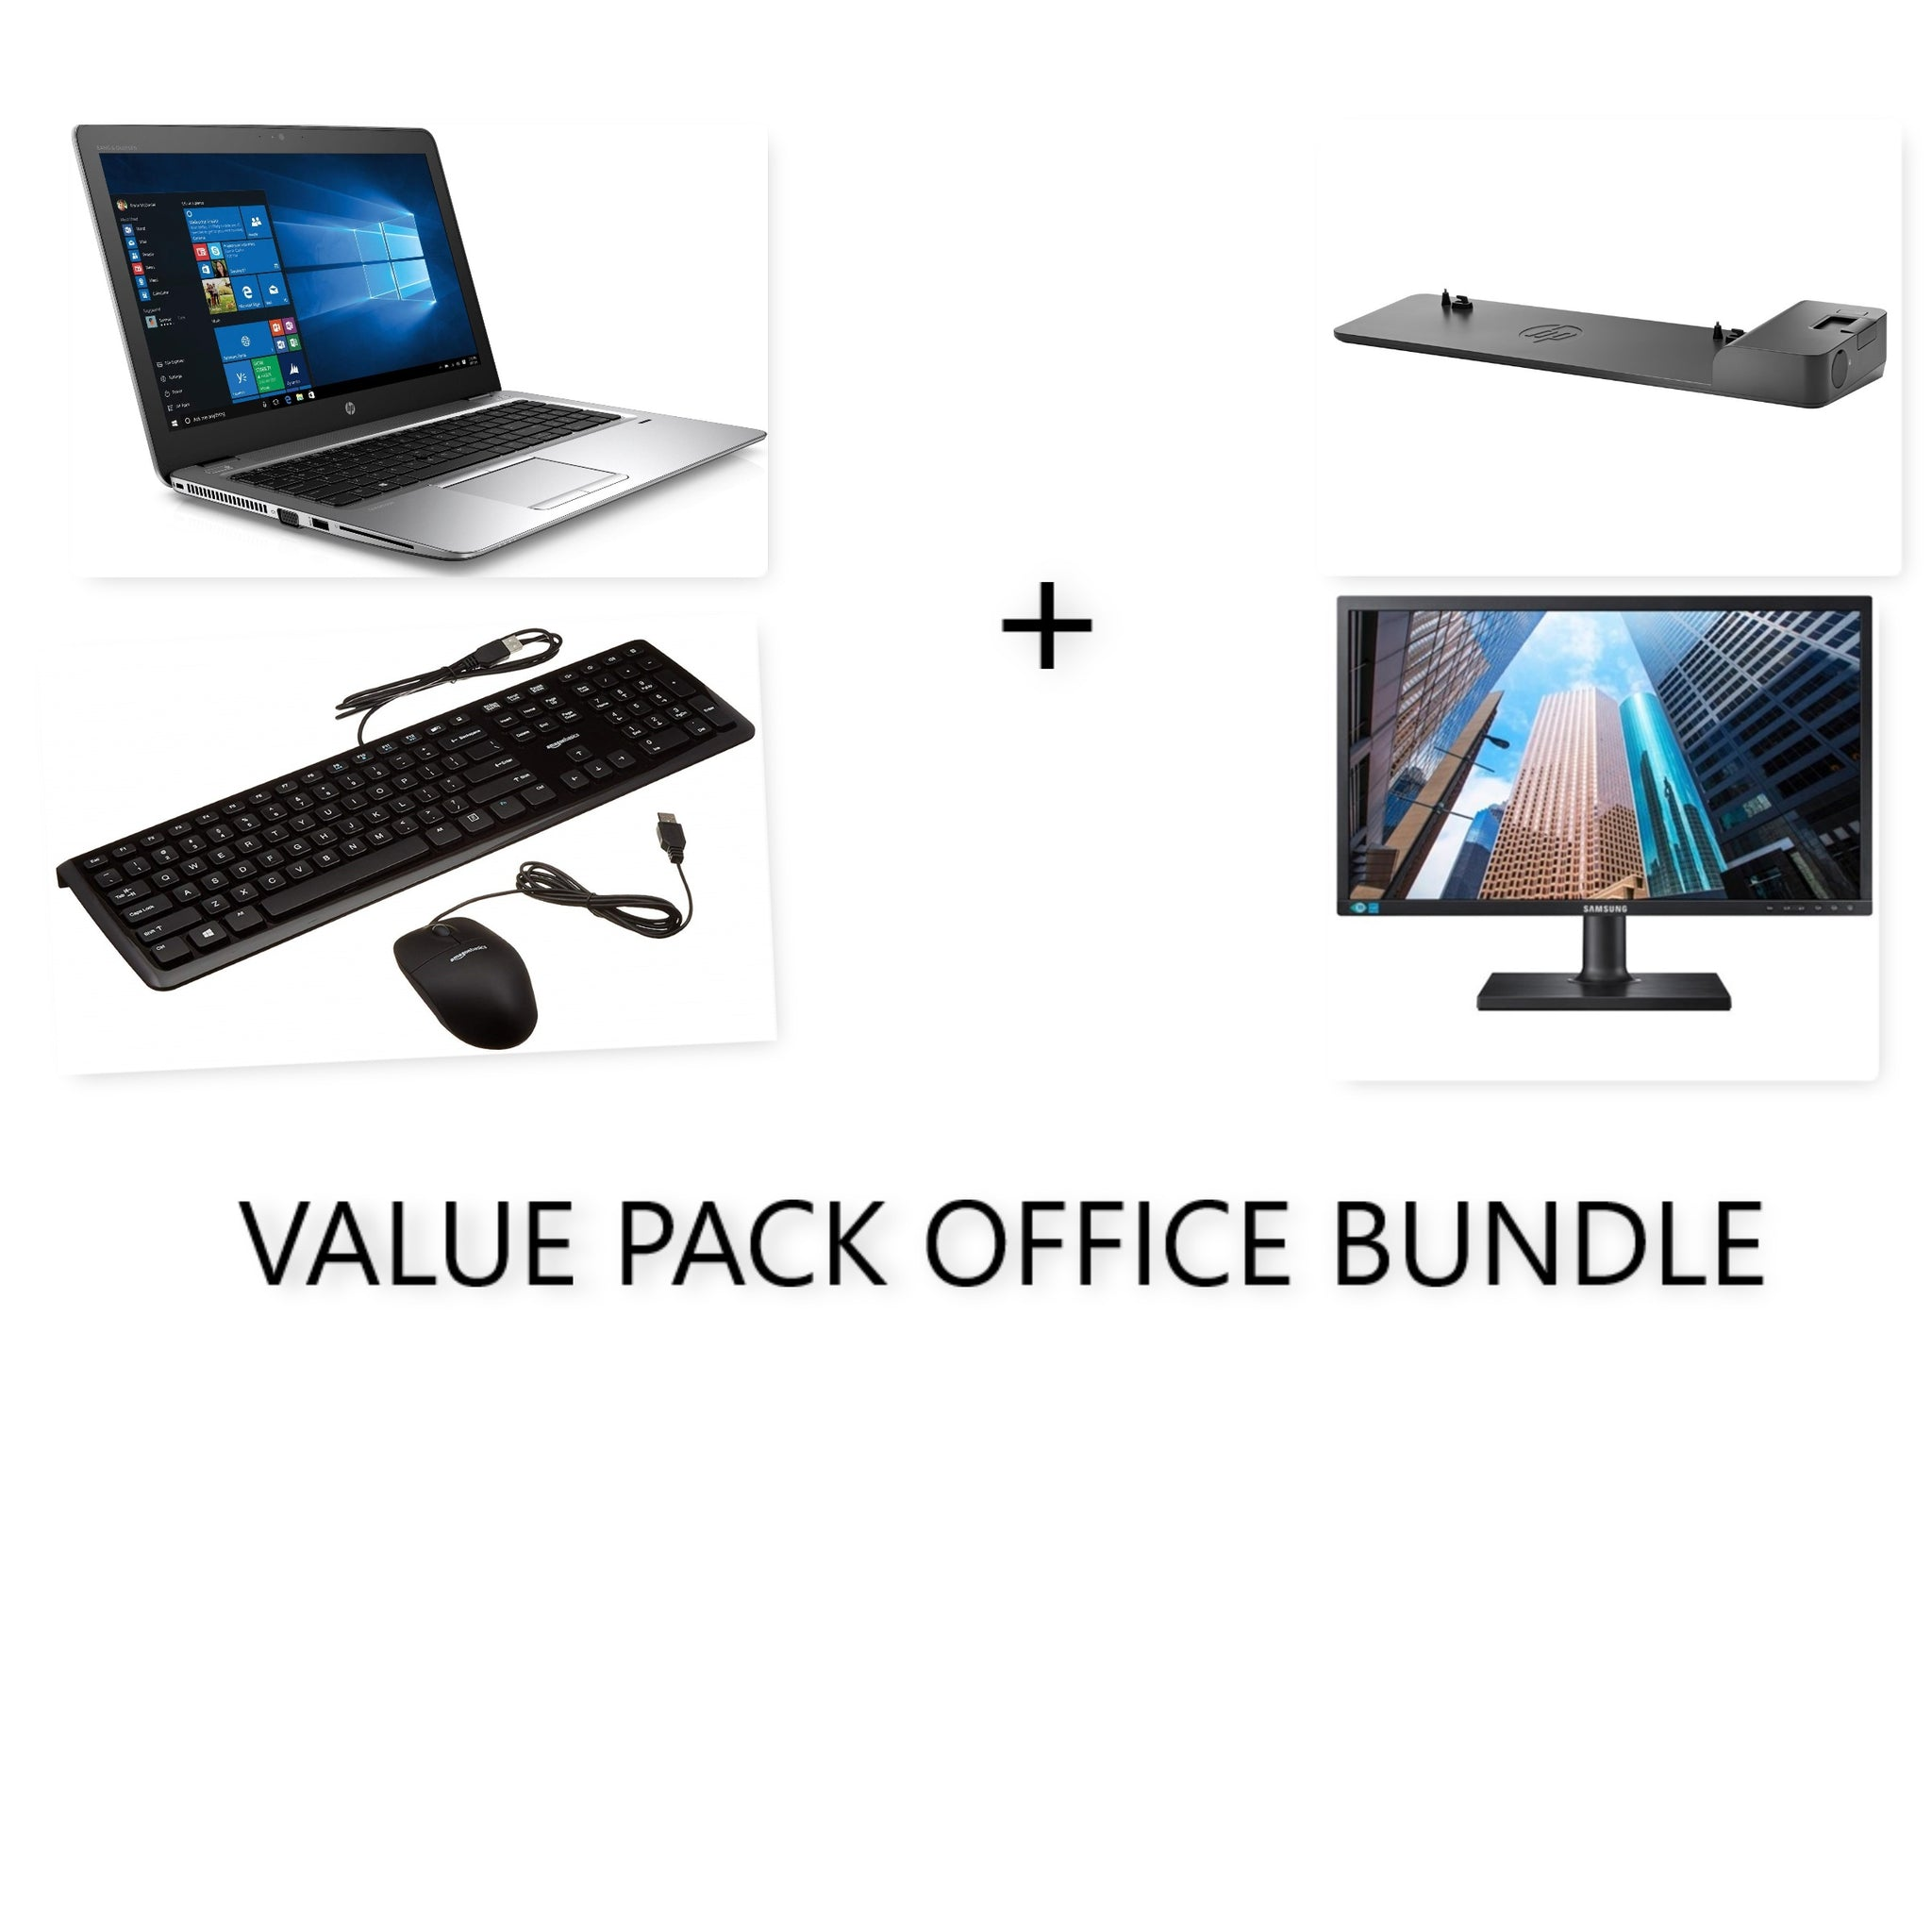 HP OFFICE COMBO!!! HP ELitebook 850 G3 i5 + 24inch FULL HD MONITOR + HP SLIM DOCKING STATION (all cables will provided)